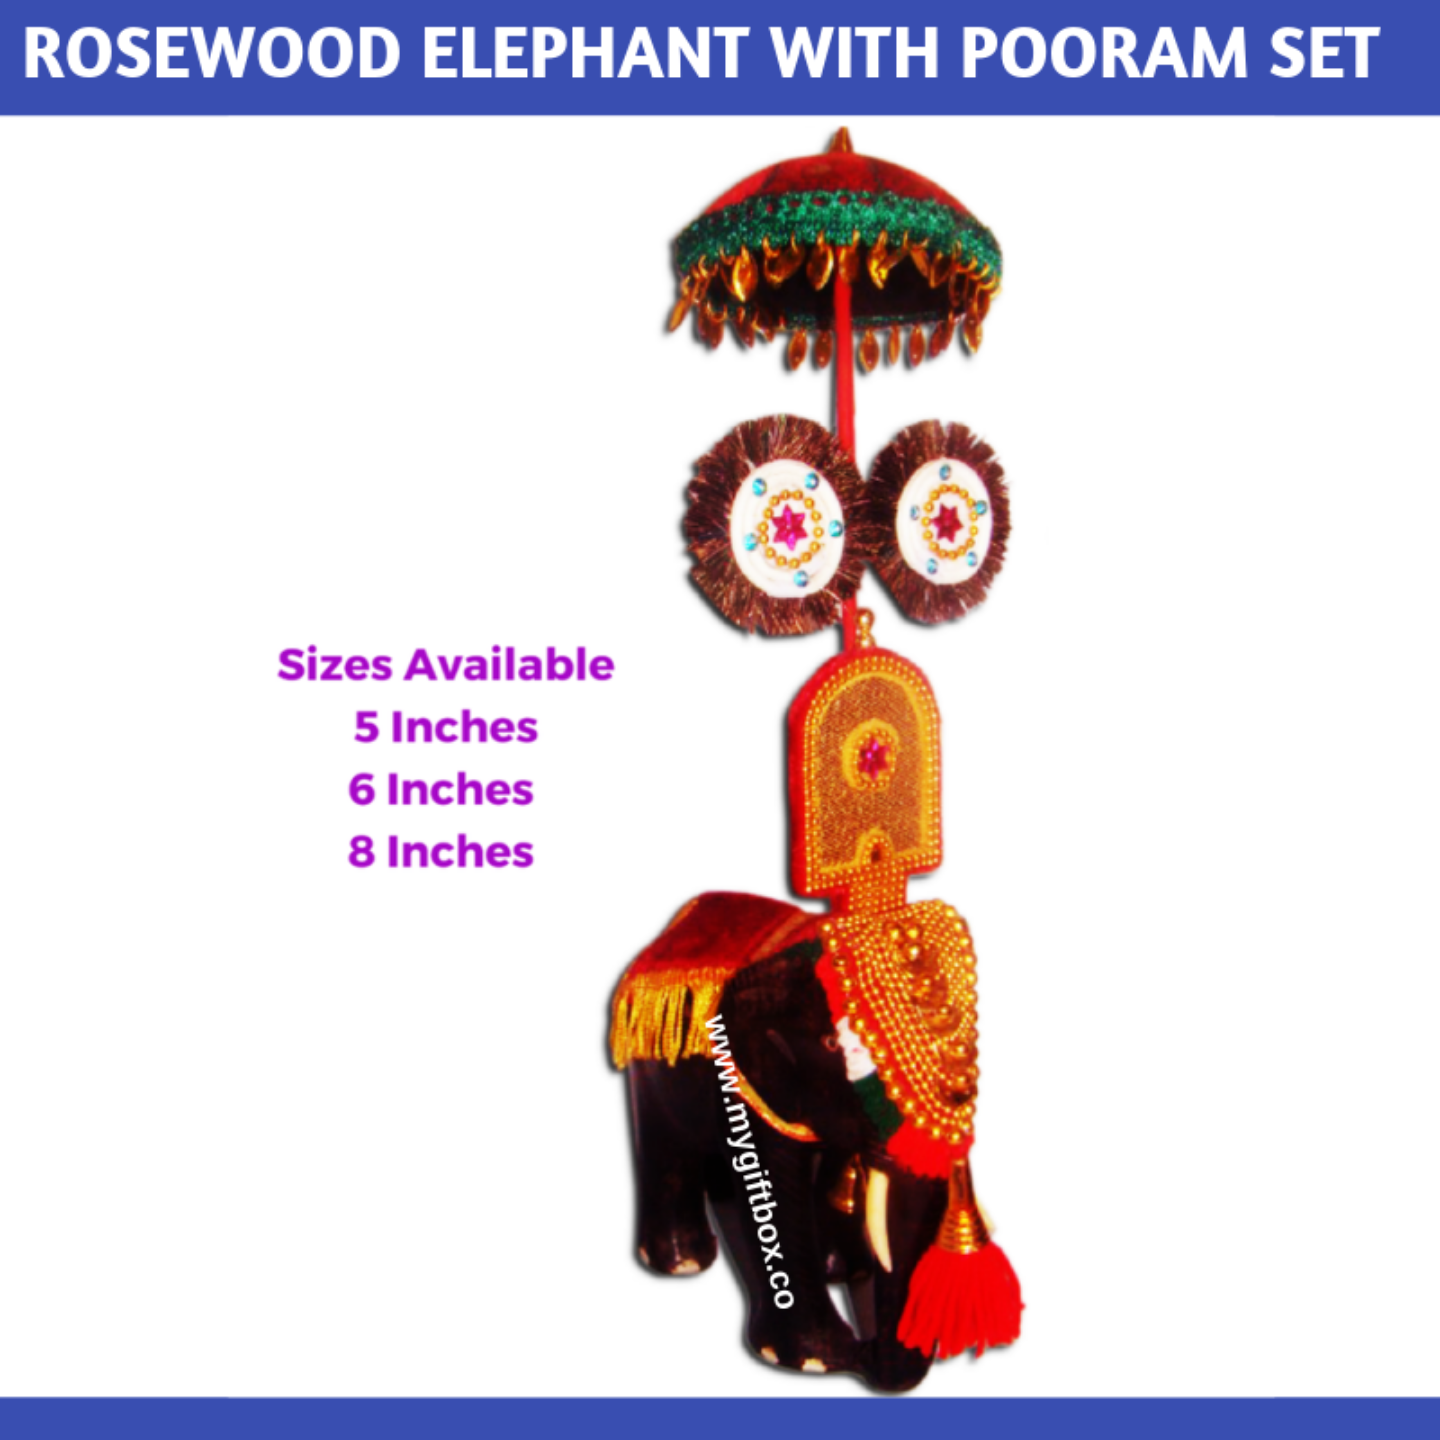 Elephant with Pooram Set - Rosewood